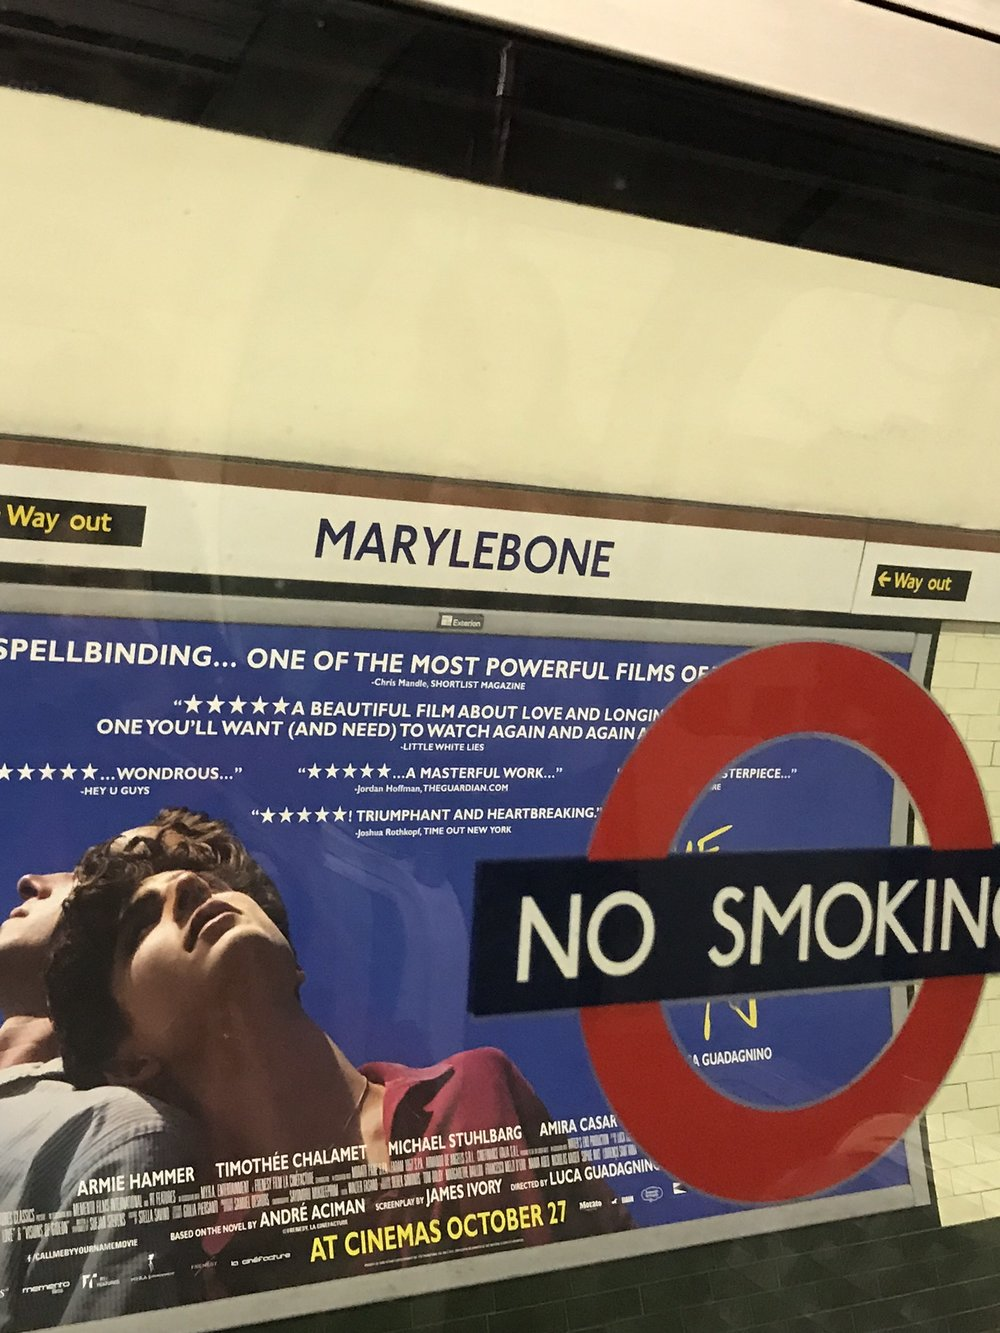 Marylebone Station - As seen in